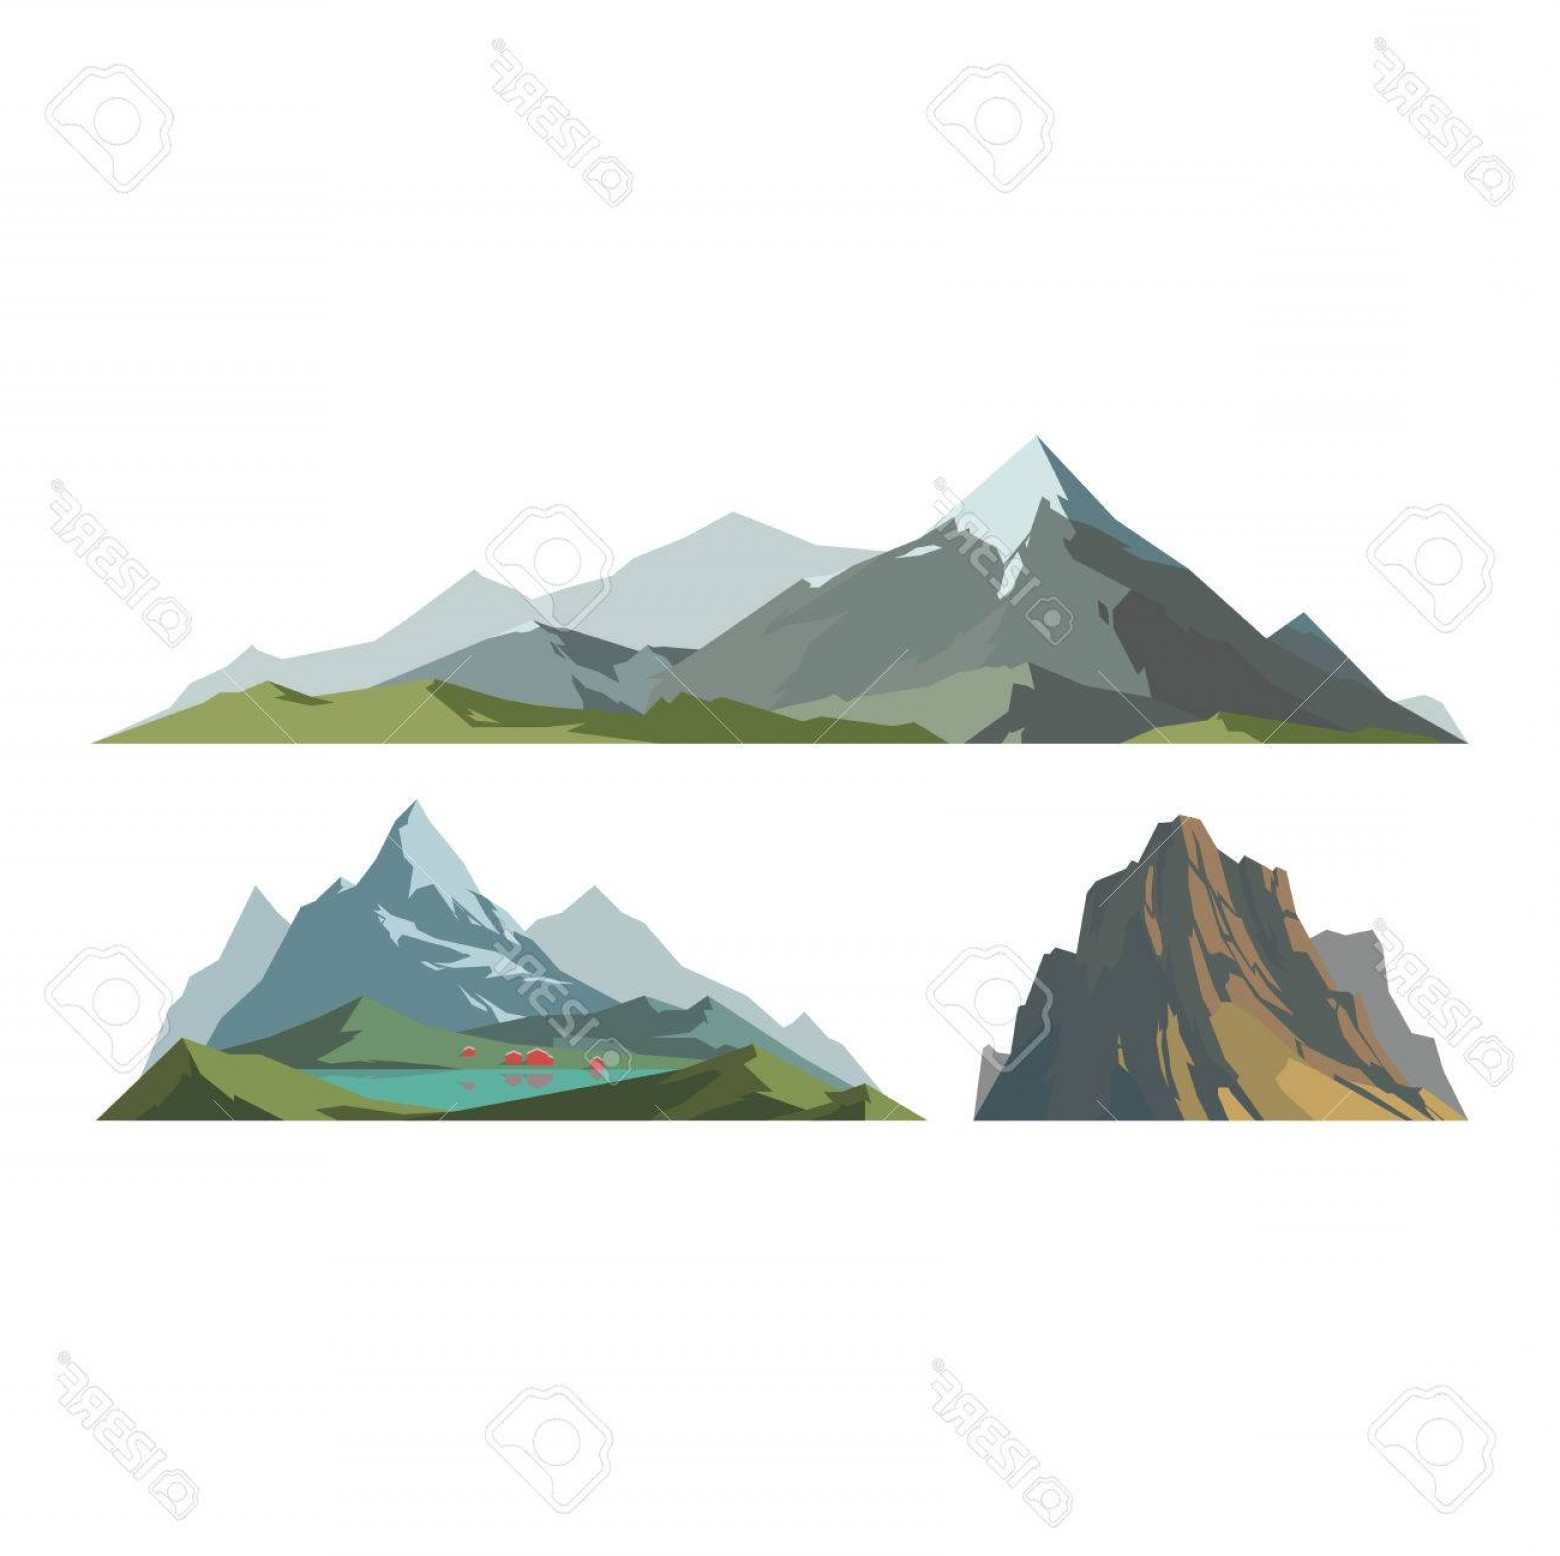 Mountain Range Silhouette Vector Free: Comfortable Photostock Vector Mountain Vector Illustration Nature Mountain Silhouette Elements Outdoor Icon Snow Ice Mountain Tops